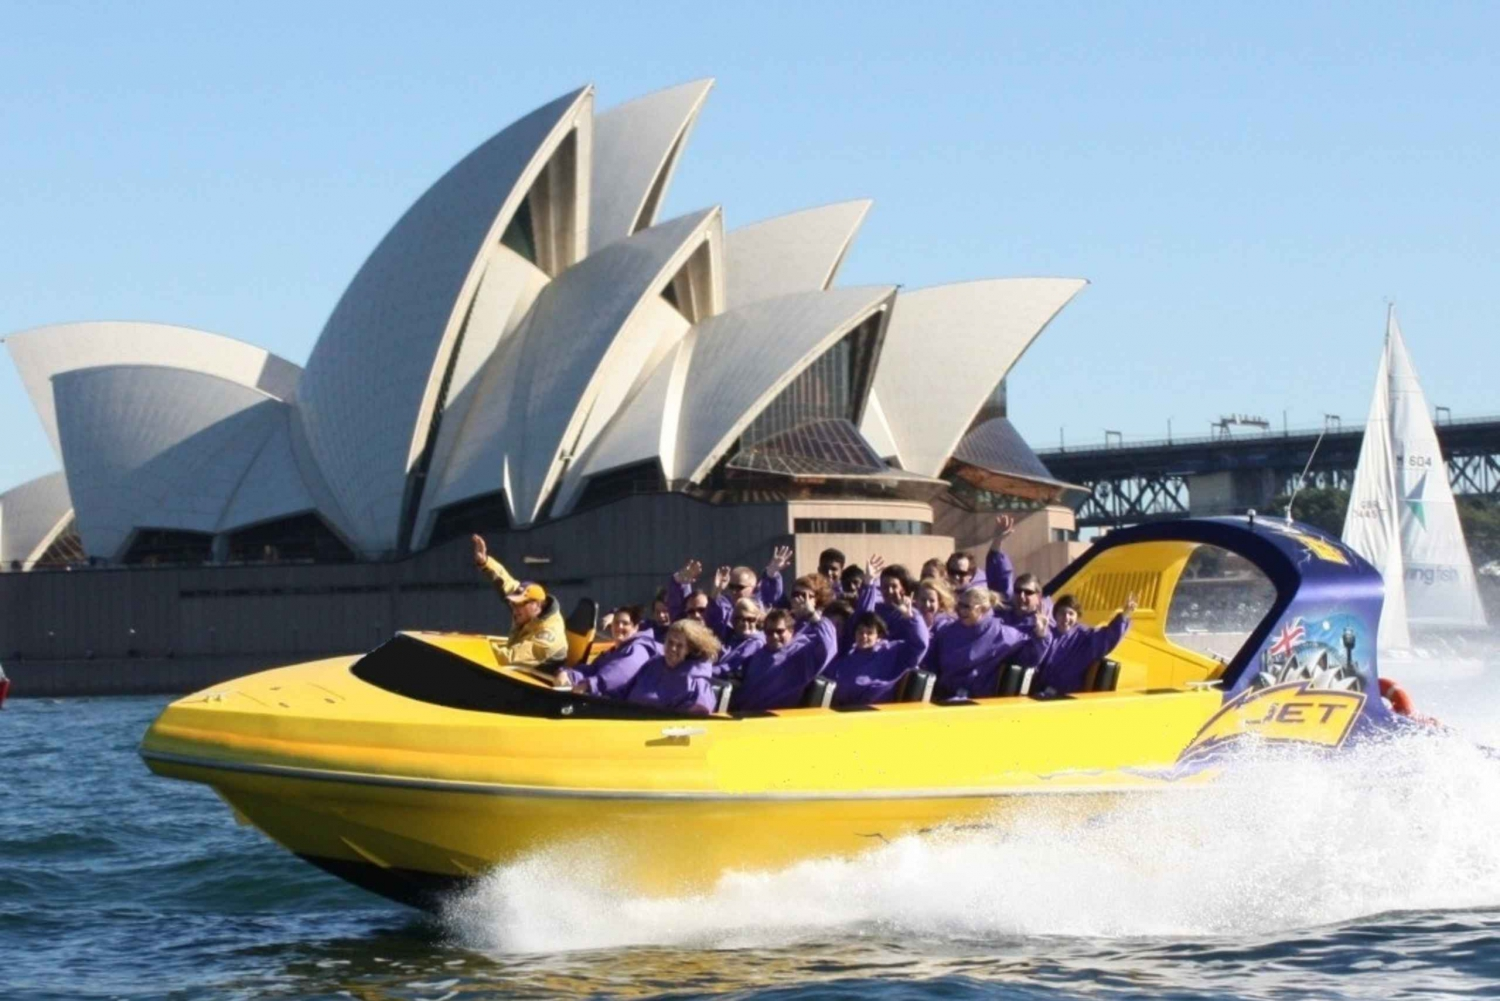 Sydney Harbour: Thunder Twist Ride